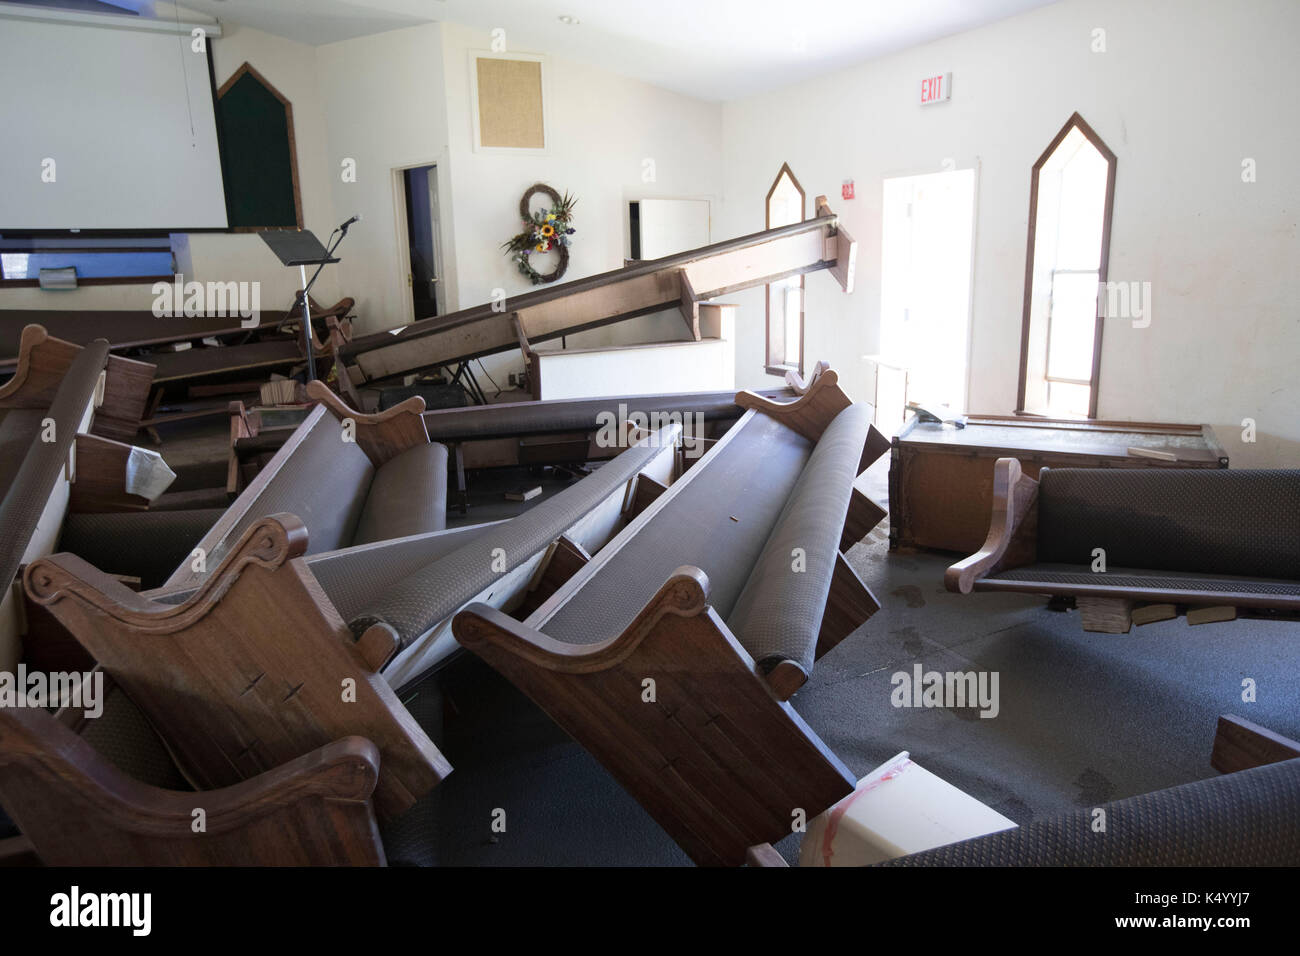 Beaumont, USA. 07th Sep, 2017. Beaumont, Texas USA Sept. 7, 2017: The Voth Baptist Church in northwest Beaumont lies in ruin after flooding inundated the church building following Hurricane Harvey almost two weeks ago. Parishoners vow to rebuild the church after the disaster. Credit: Bob Daemmrich/Alamy Live News - Stock Image